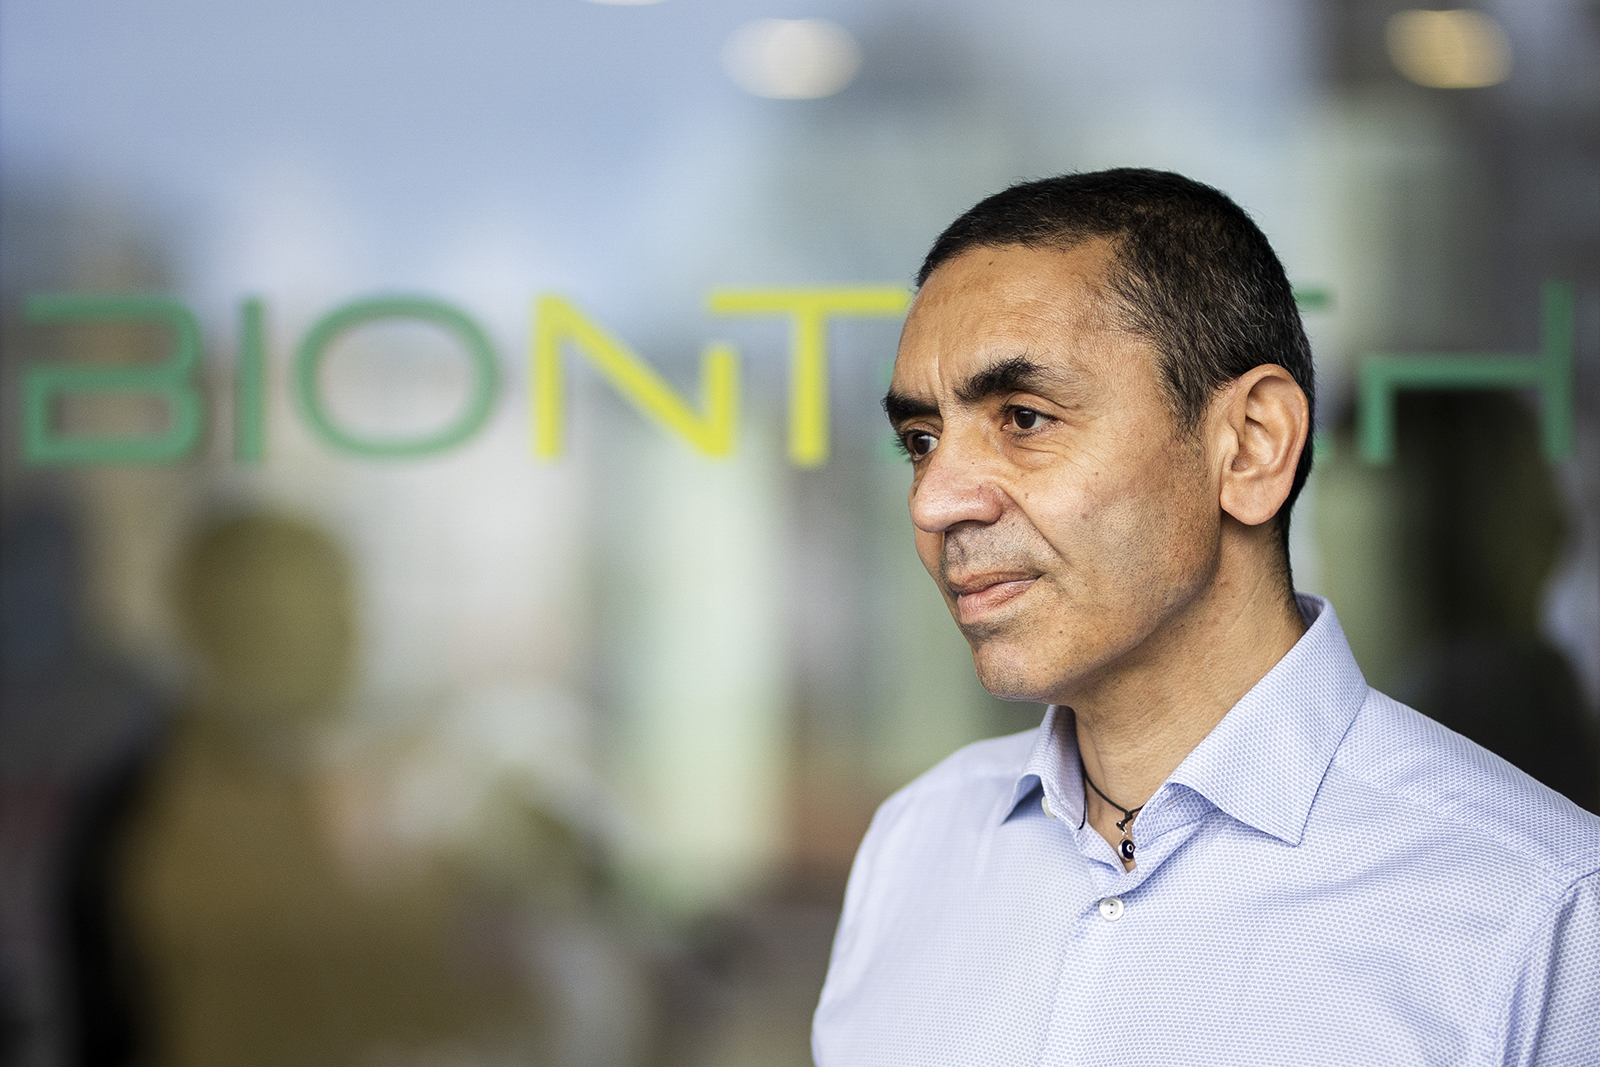 Ugur Sahin, chairman of BioNTech, is seen on December 4, 2020 in Mainz, Germany.